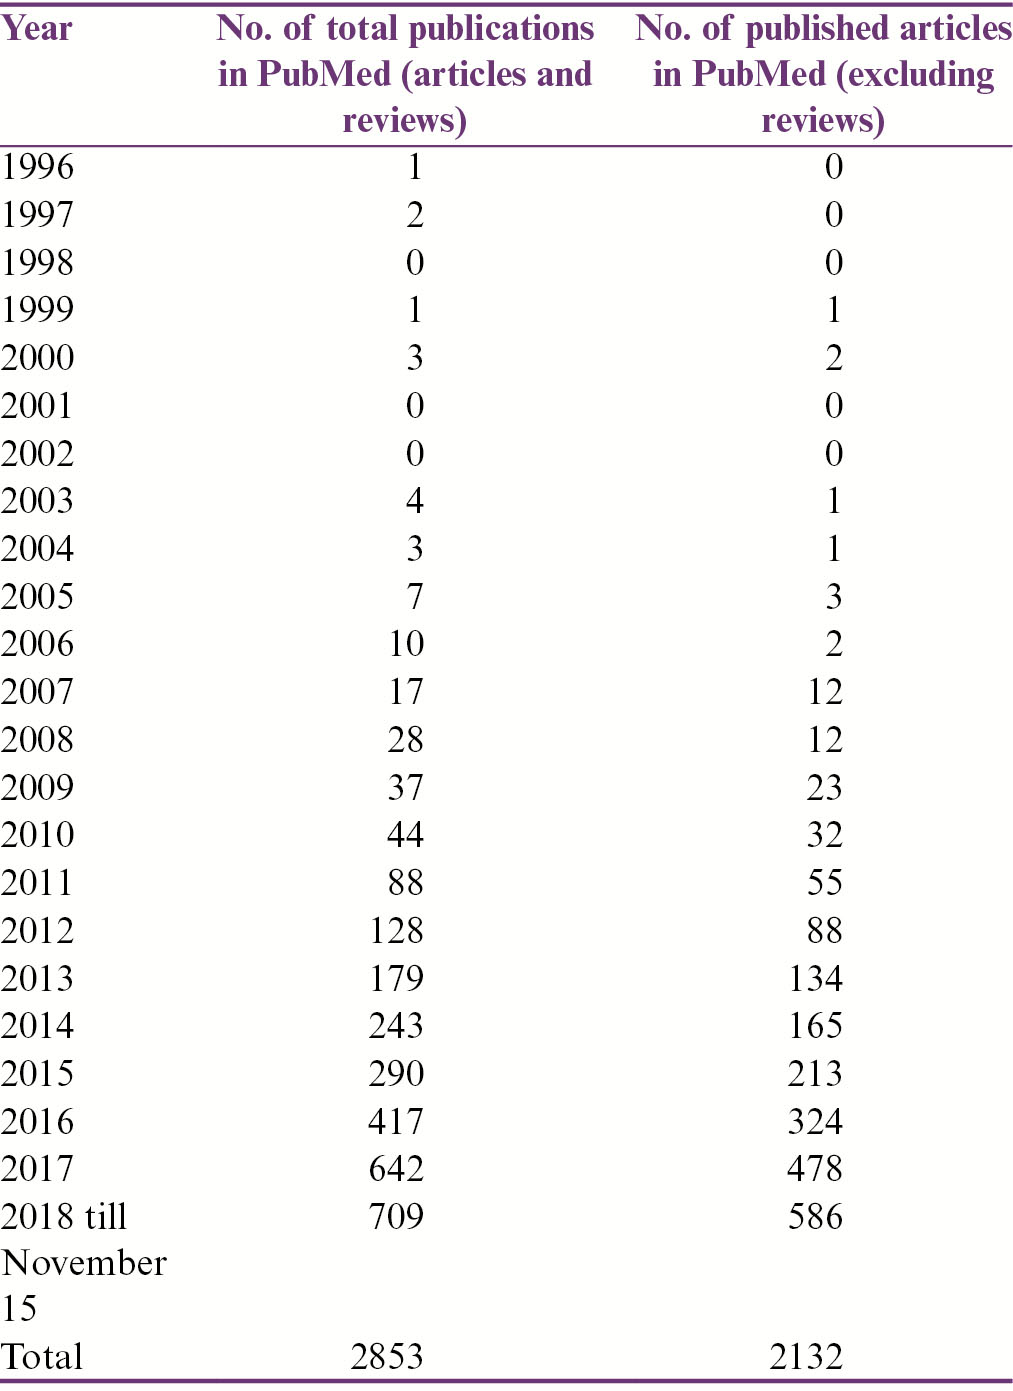 Table 3: The number of the published articles about antimicrobial stewardship in PubMed since 1996